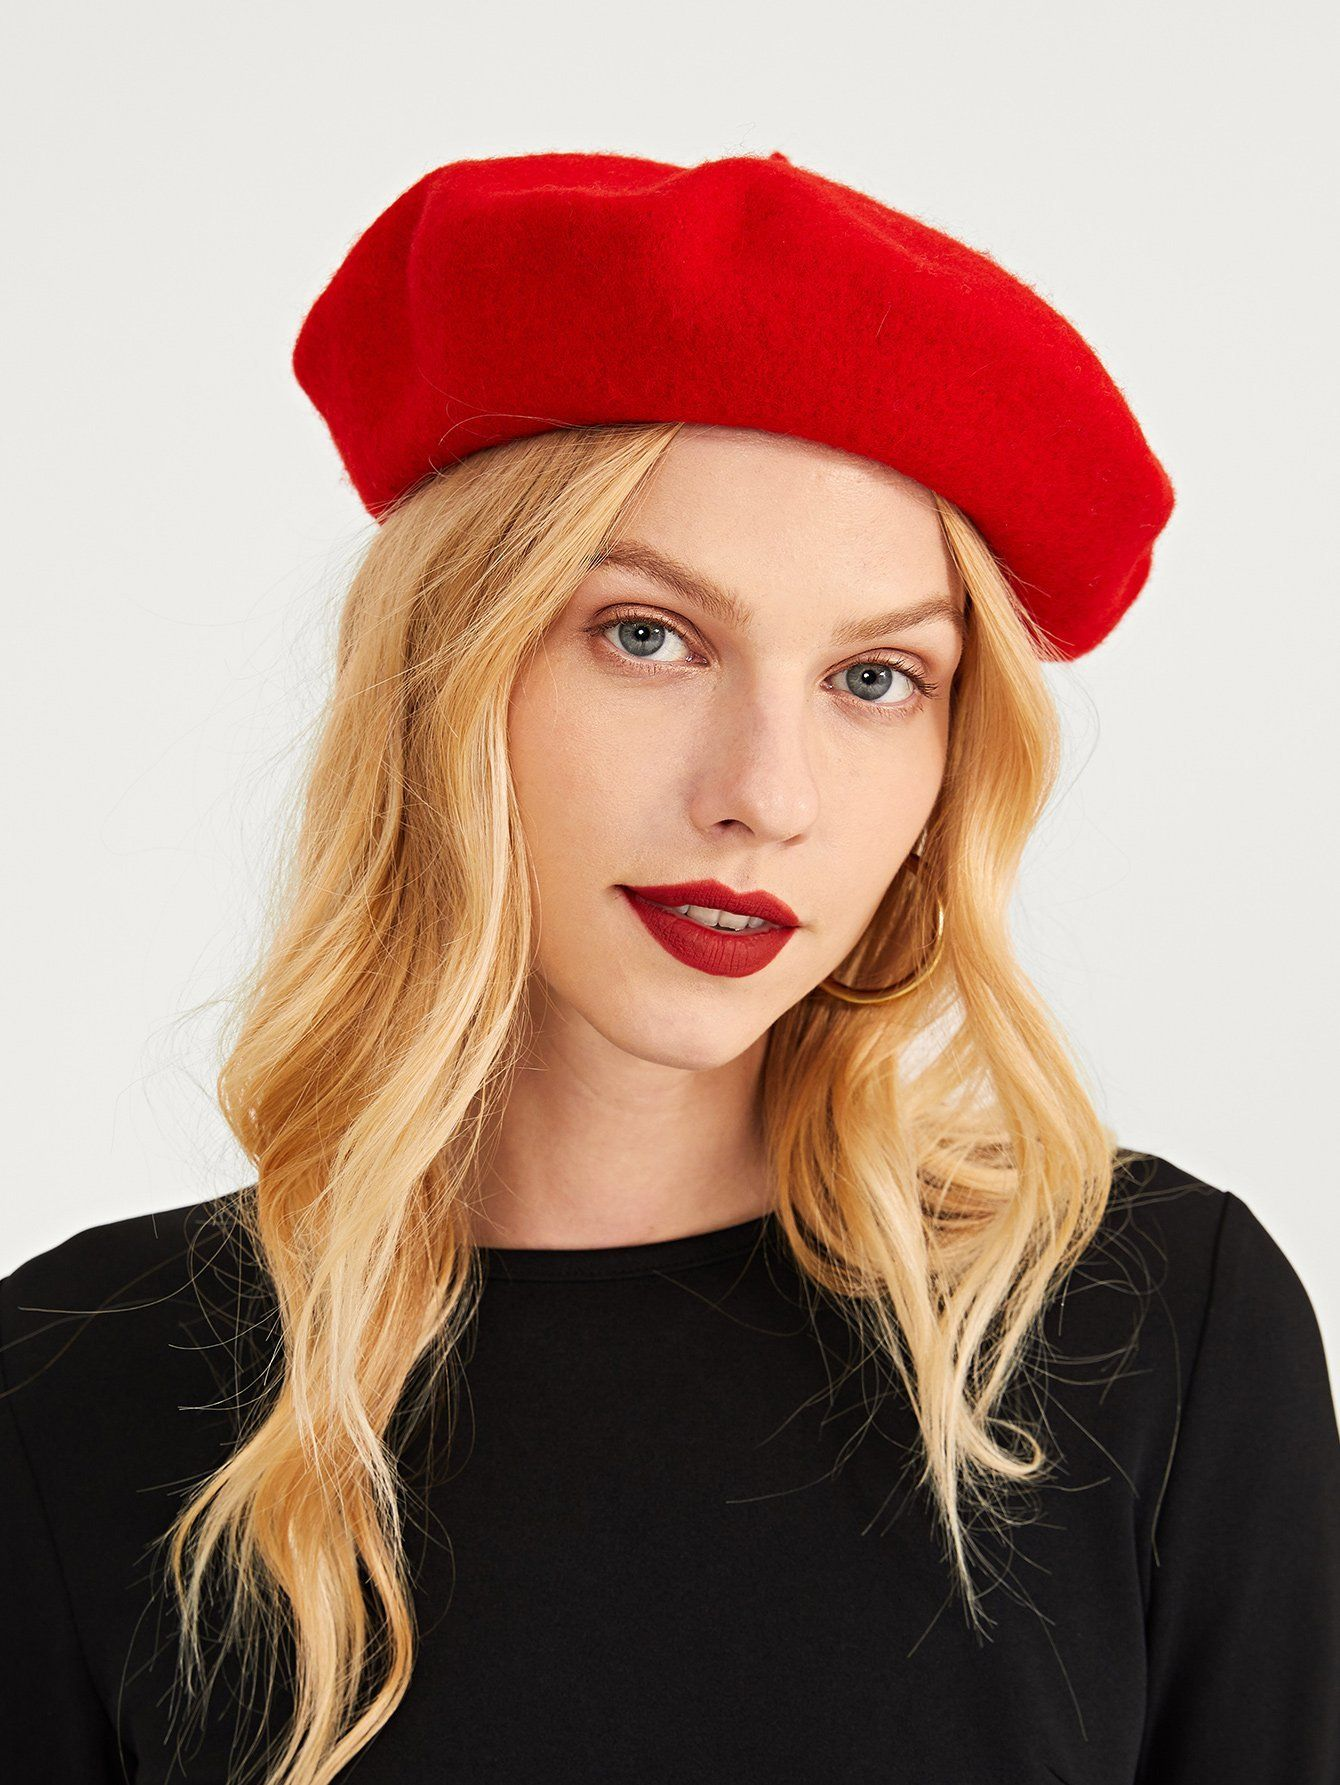 8ebb041bba7a2 Women s Plain Red Beret Cap FREE SHIP in 2019